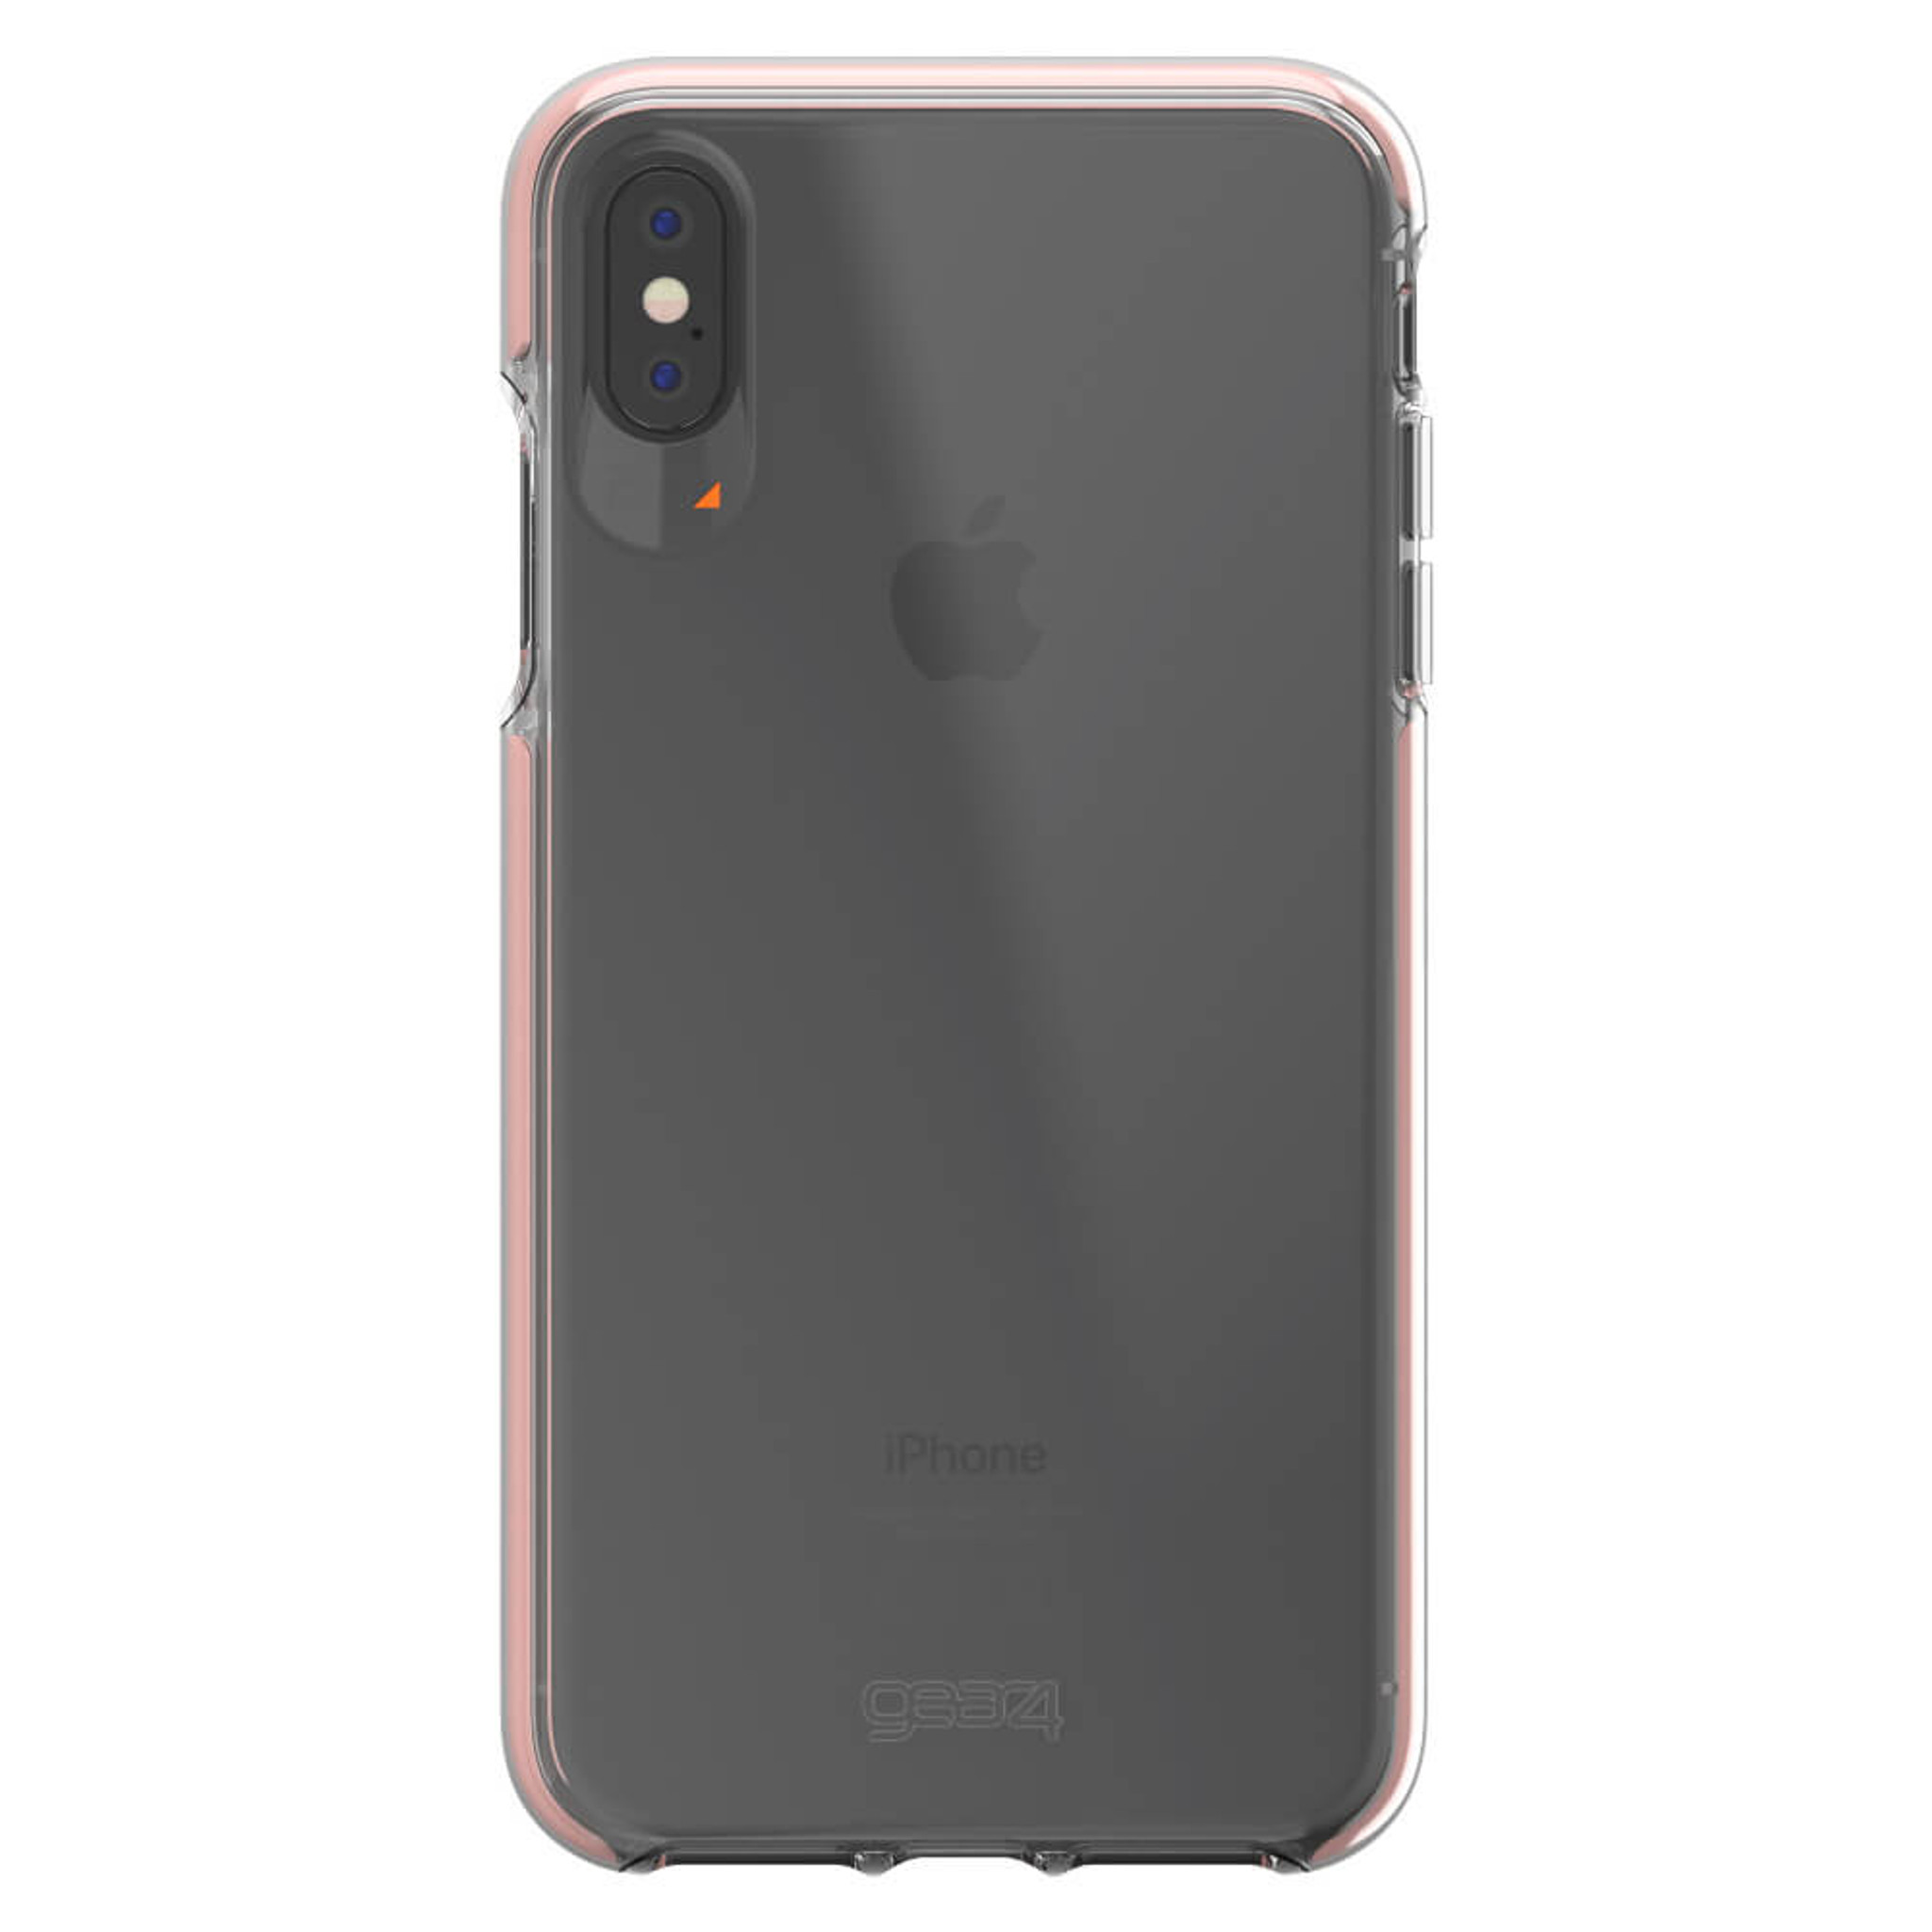 online store 43641 c1c0a iPhone Xs Max Gear4 D3O Rose Gold Piccadilly Case